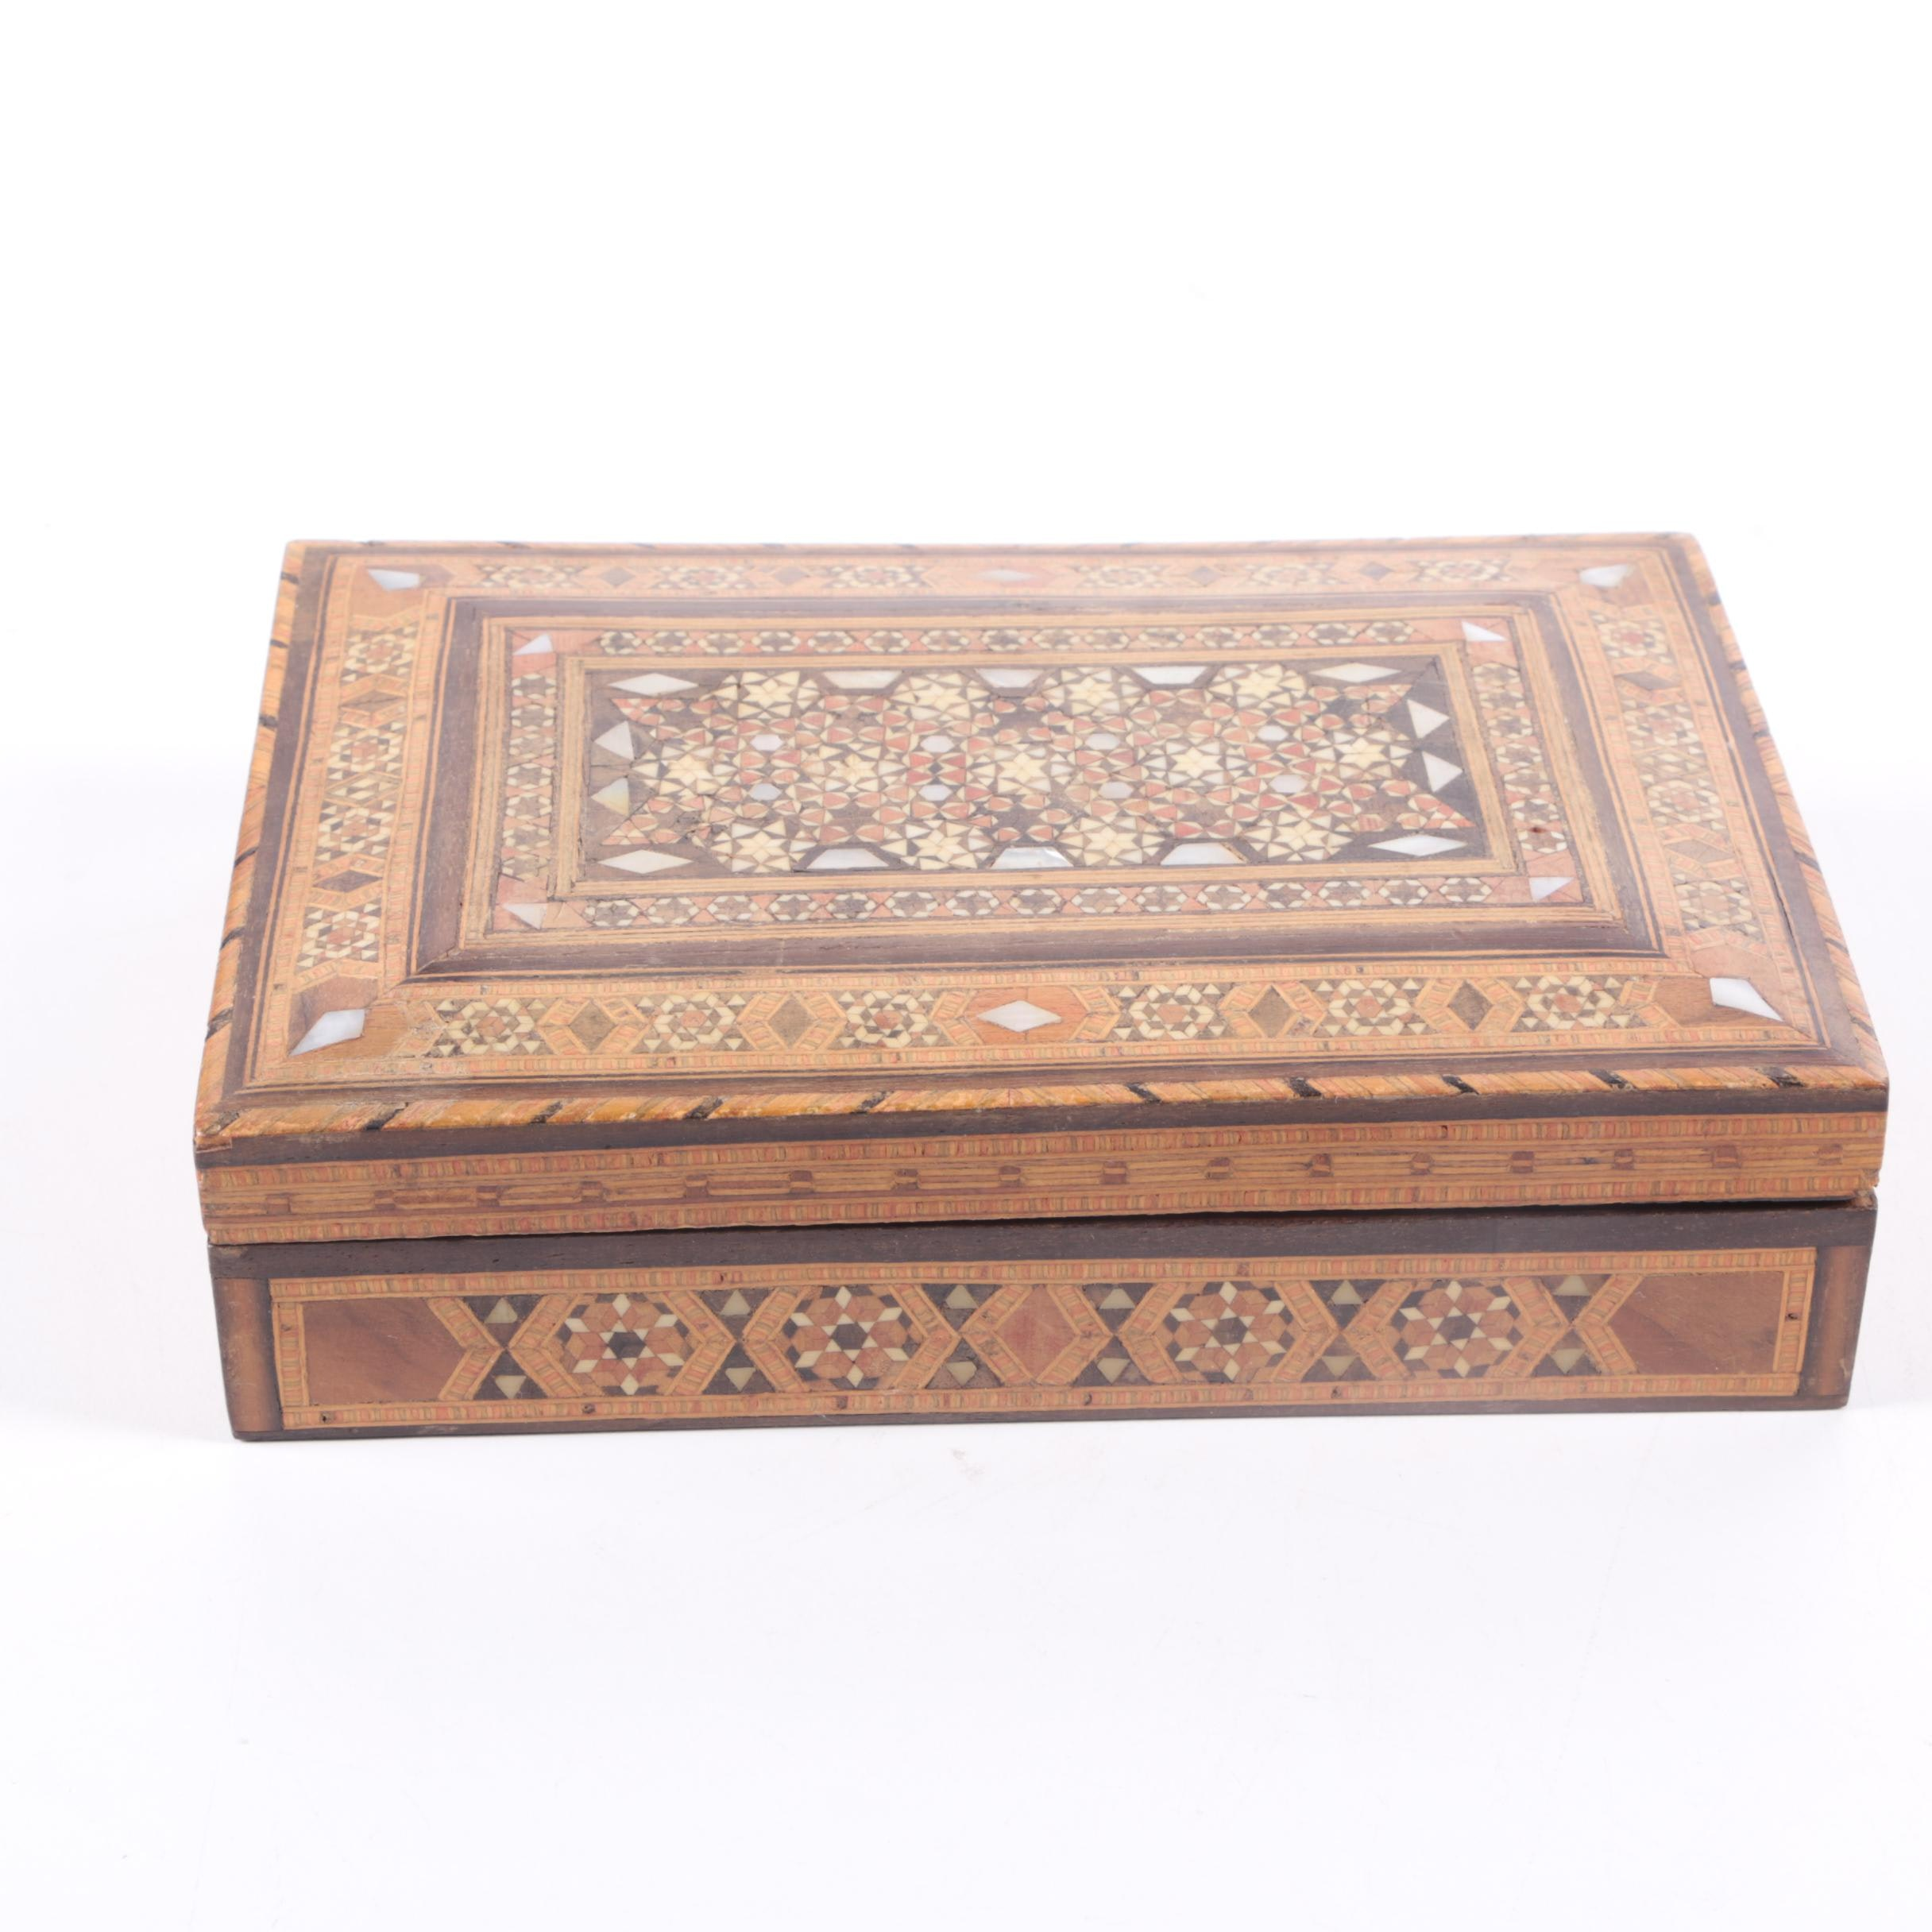 Moorish Style Inlaid Wooden Box